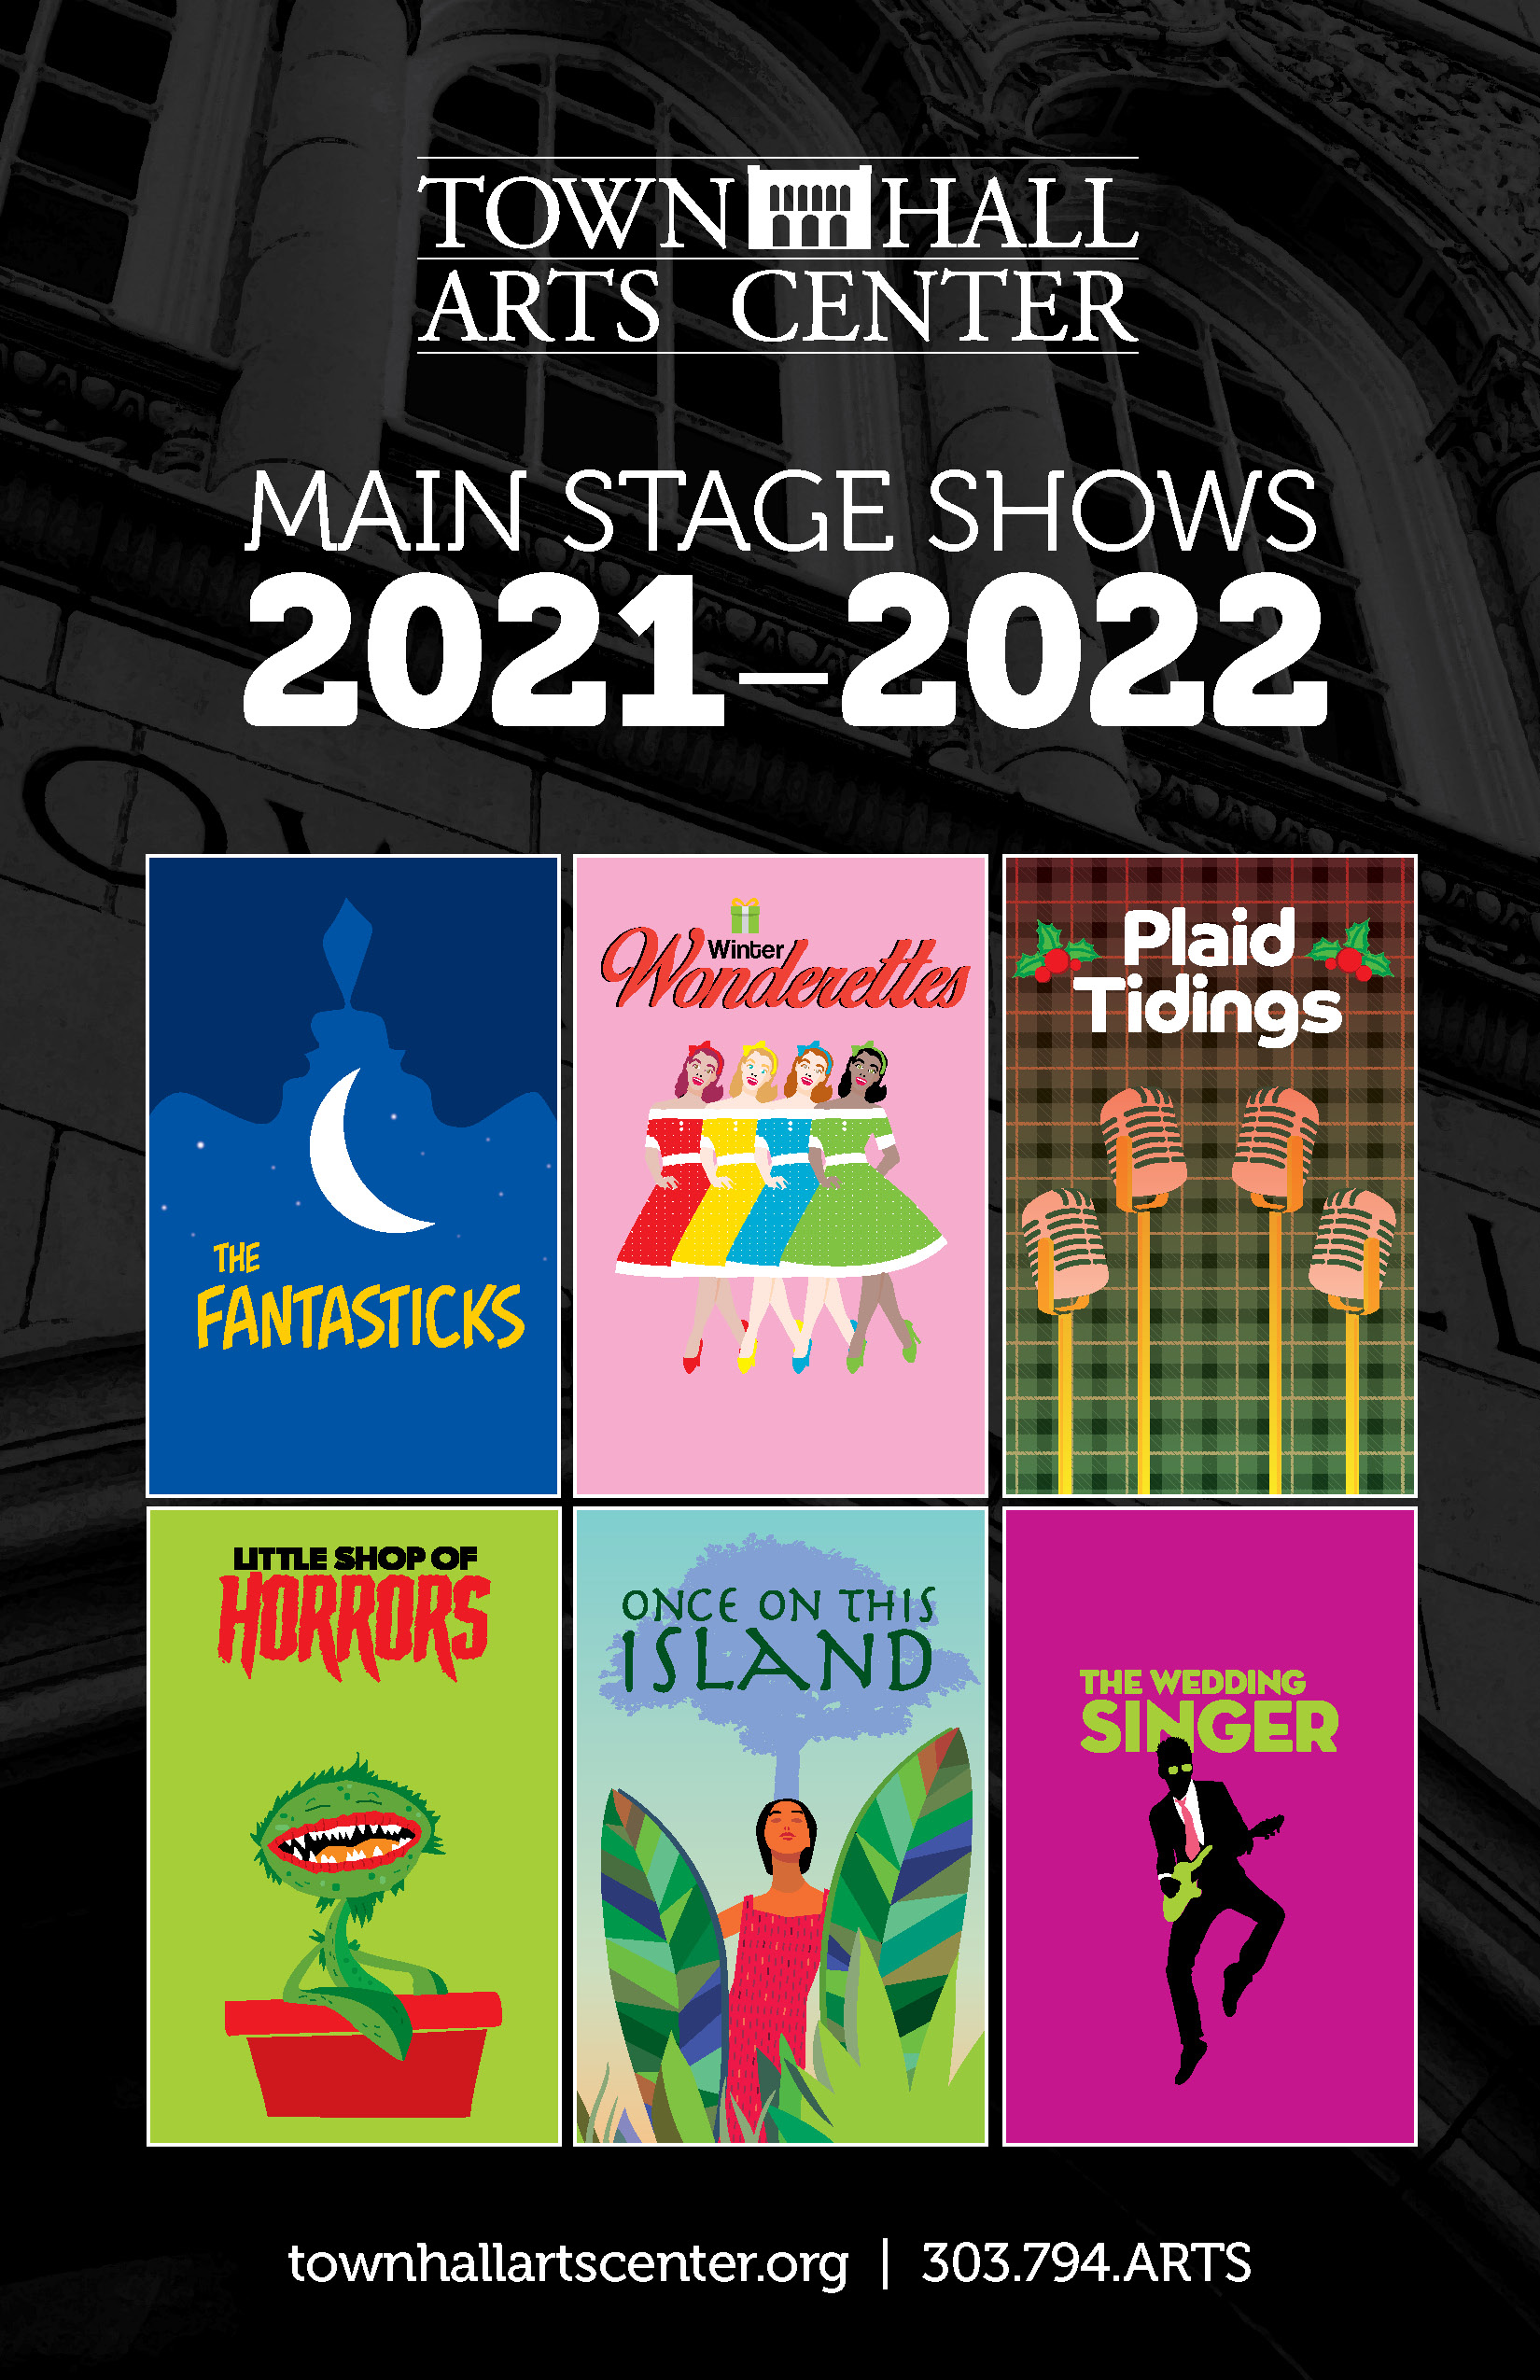 2021-2022 Main Stage Shows